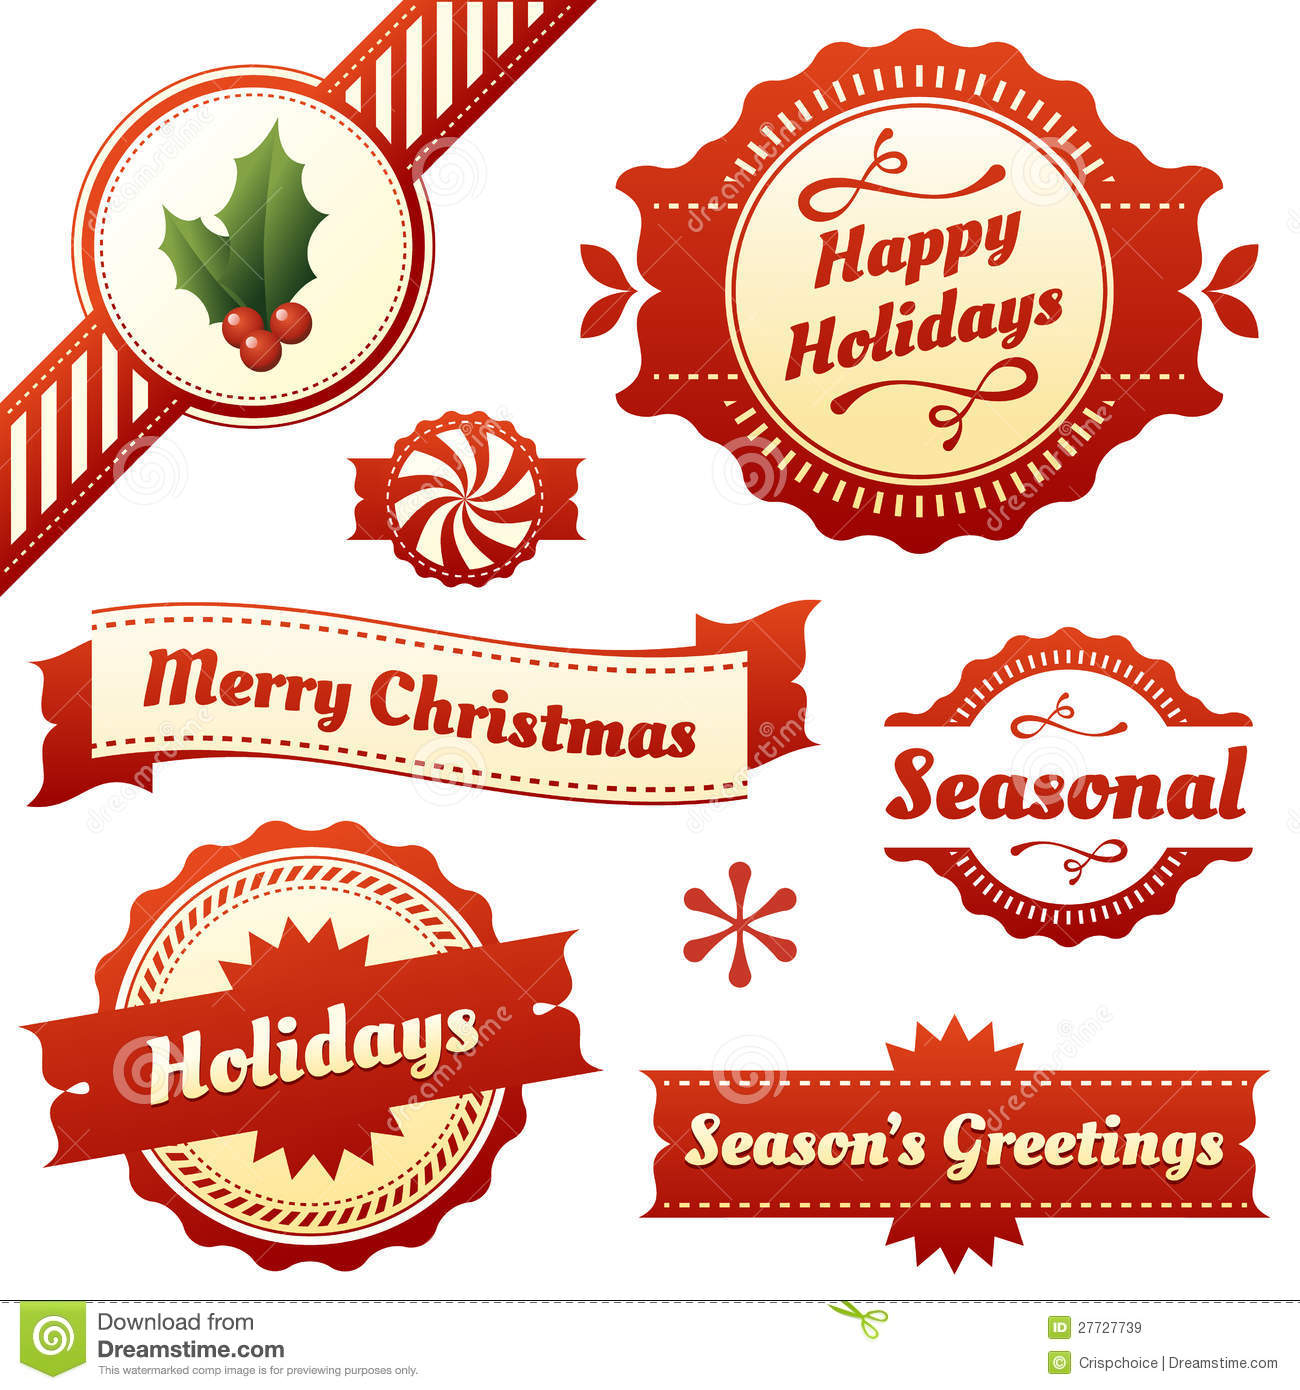 Seasonal labels tags and banners for holidays stock vector seasonal labels tags and banners for holidays kristyandbryce Choice Image